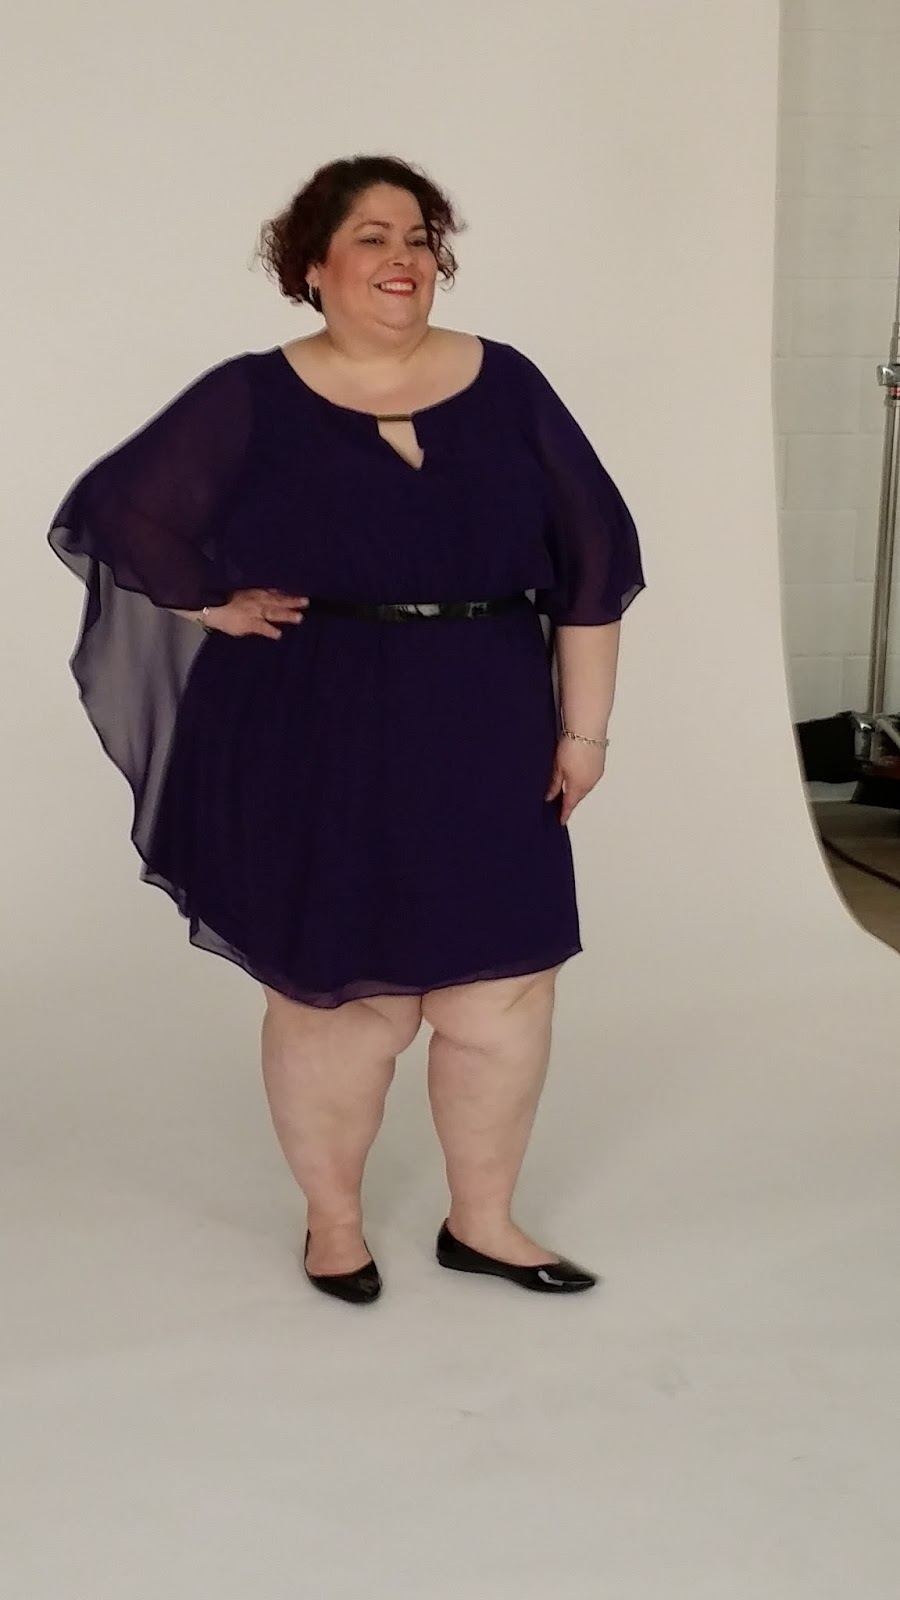 Ive Gotten The Opportunity To Try On A Mini Dress A Cape Dress Open Back Styles Sleeveless Styles And More